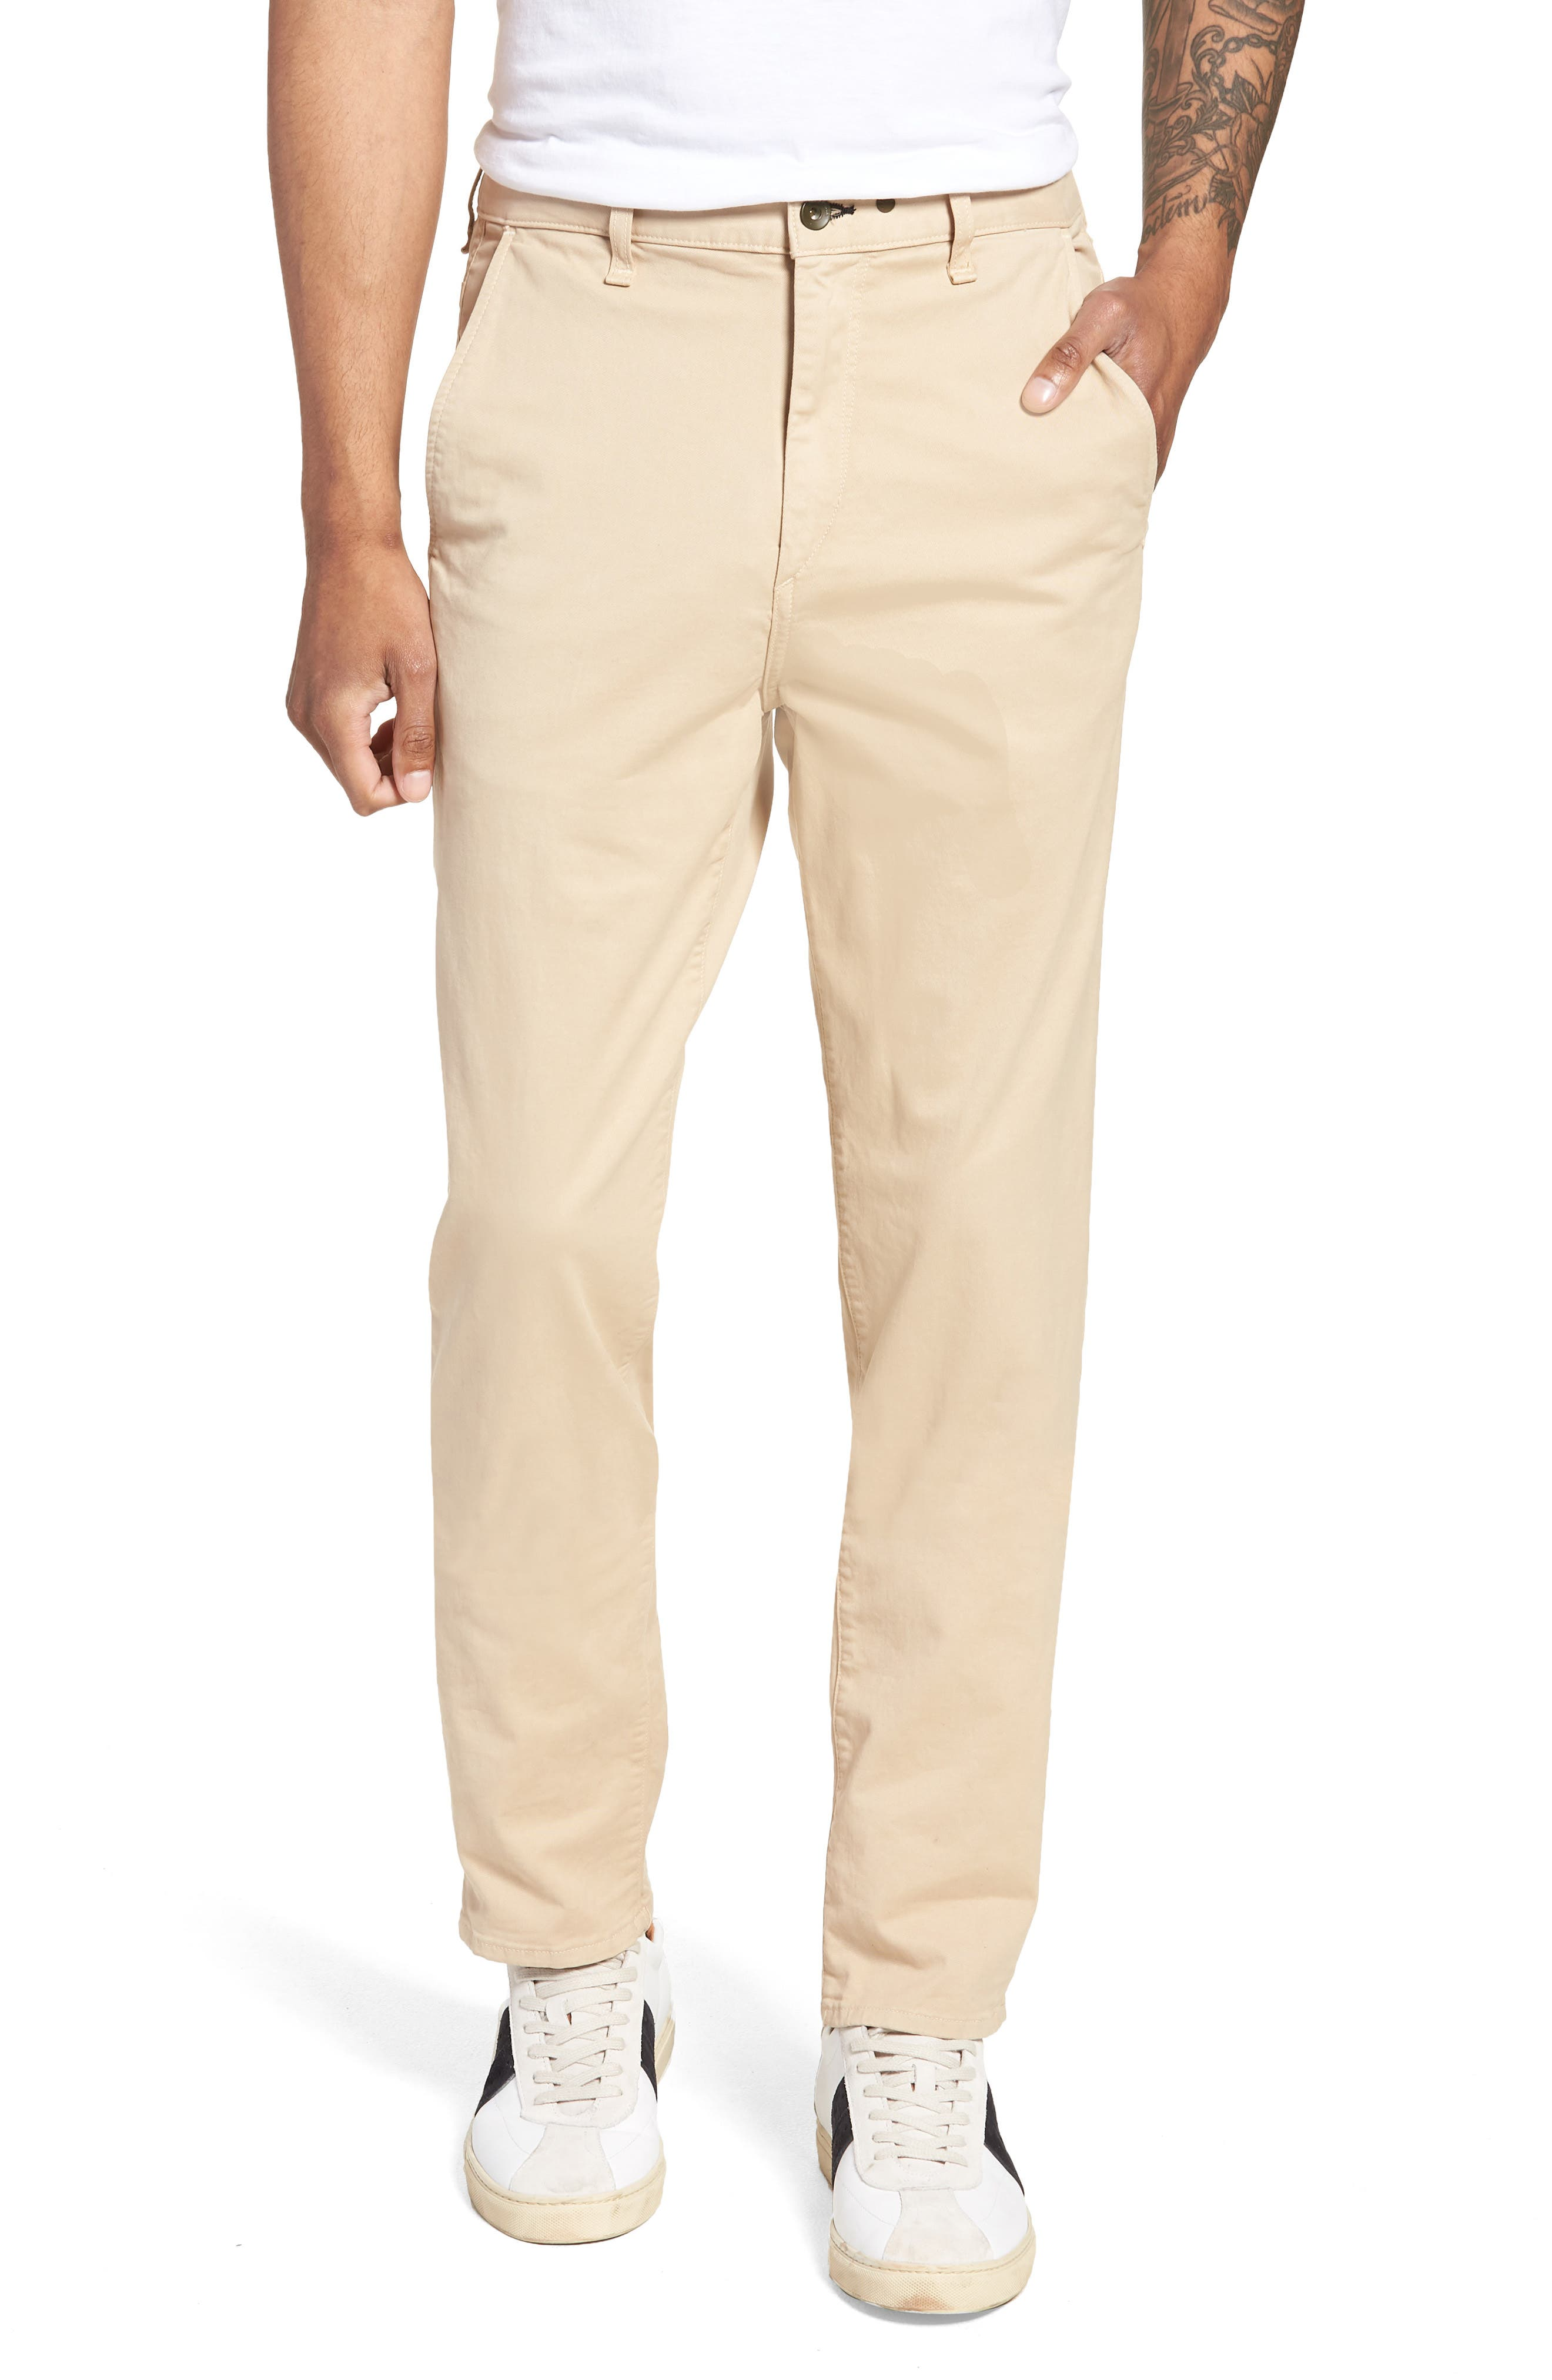 Fit 3 Classic Chino,                         Main,                         color, BEIGE